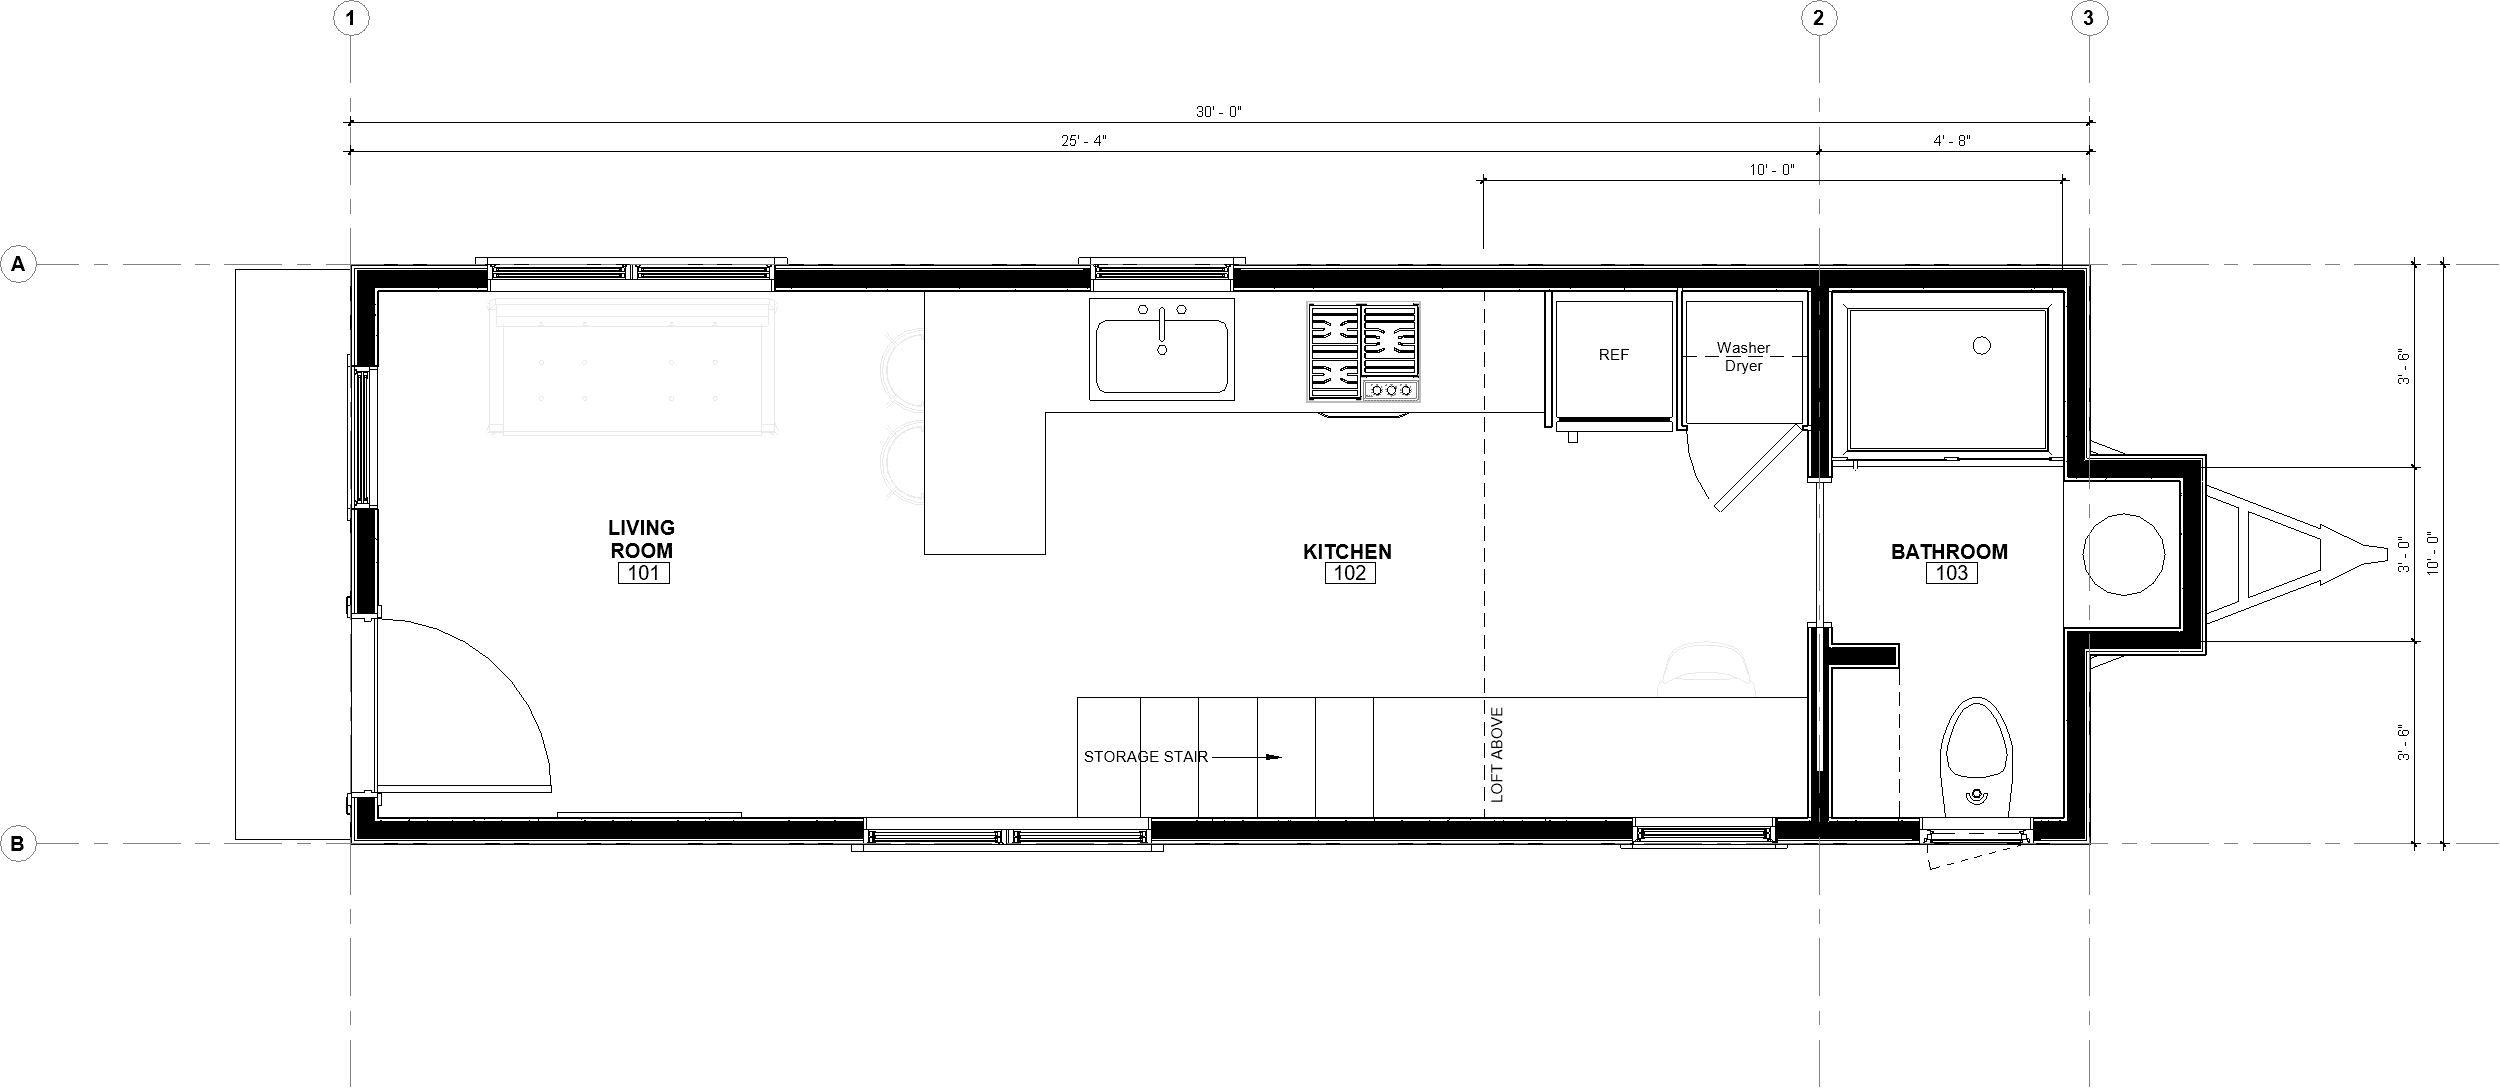 30ft Loft Toccoa floor plans with dimensions